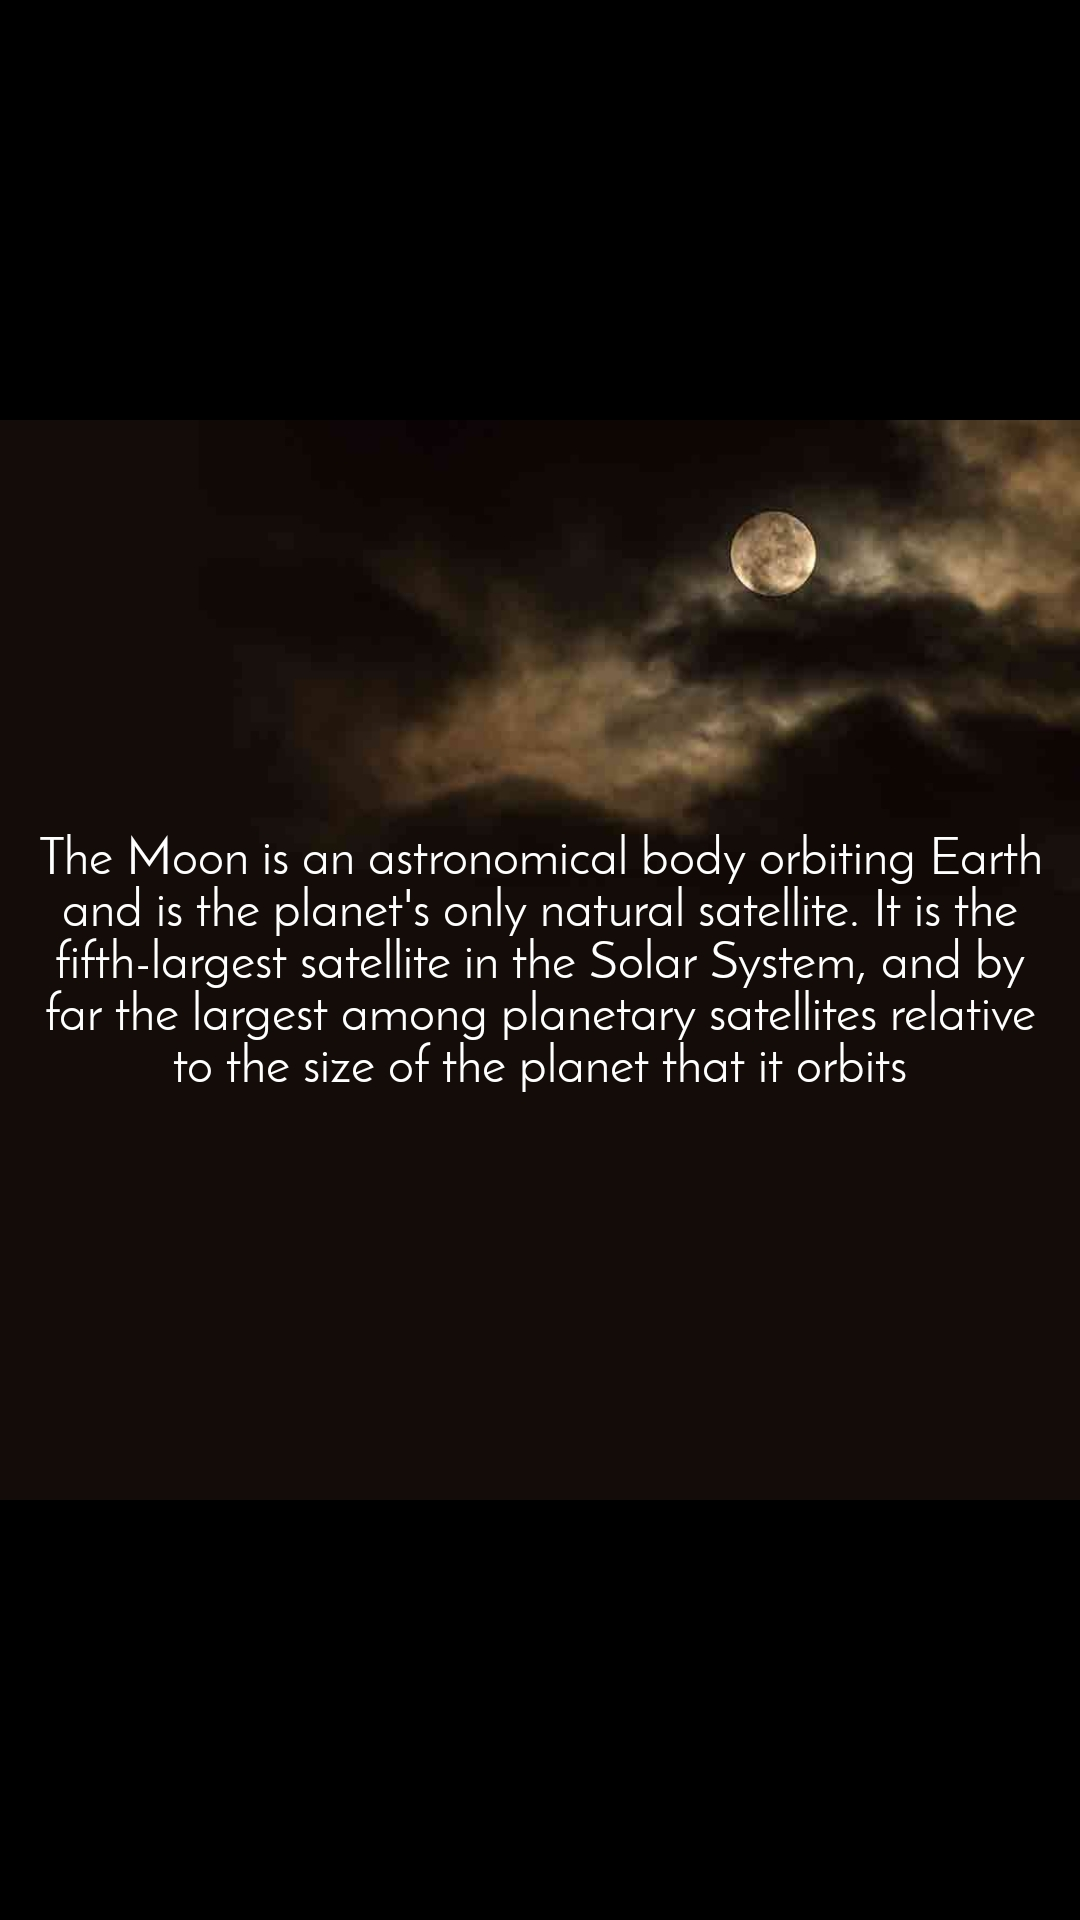 The Moon is an astronomical body orbiting Earth and is the planet's only natural satellite. It is the fifth-largest satellite in the Solar System, and by far the largest among planetary satellites relative to the size of the planet that it orbits